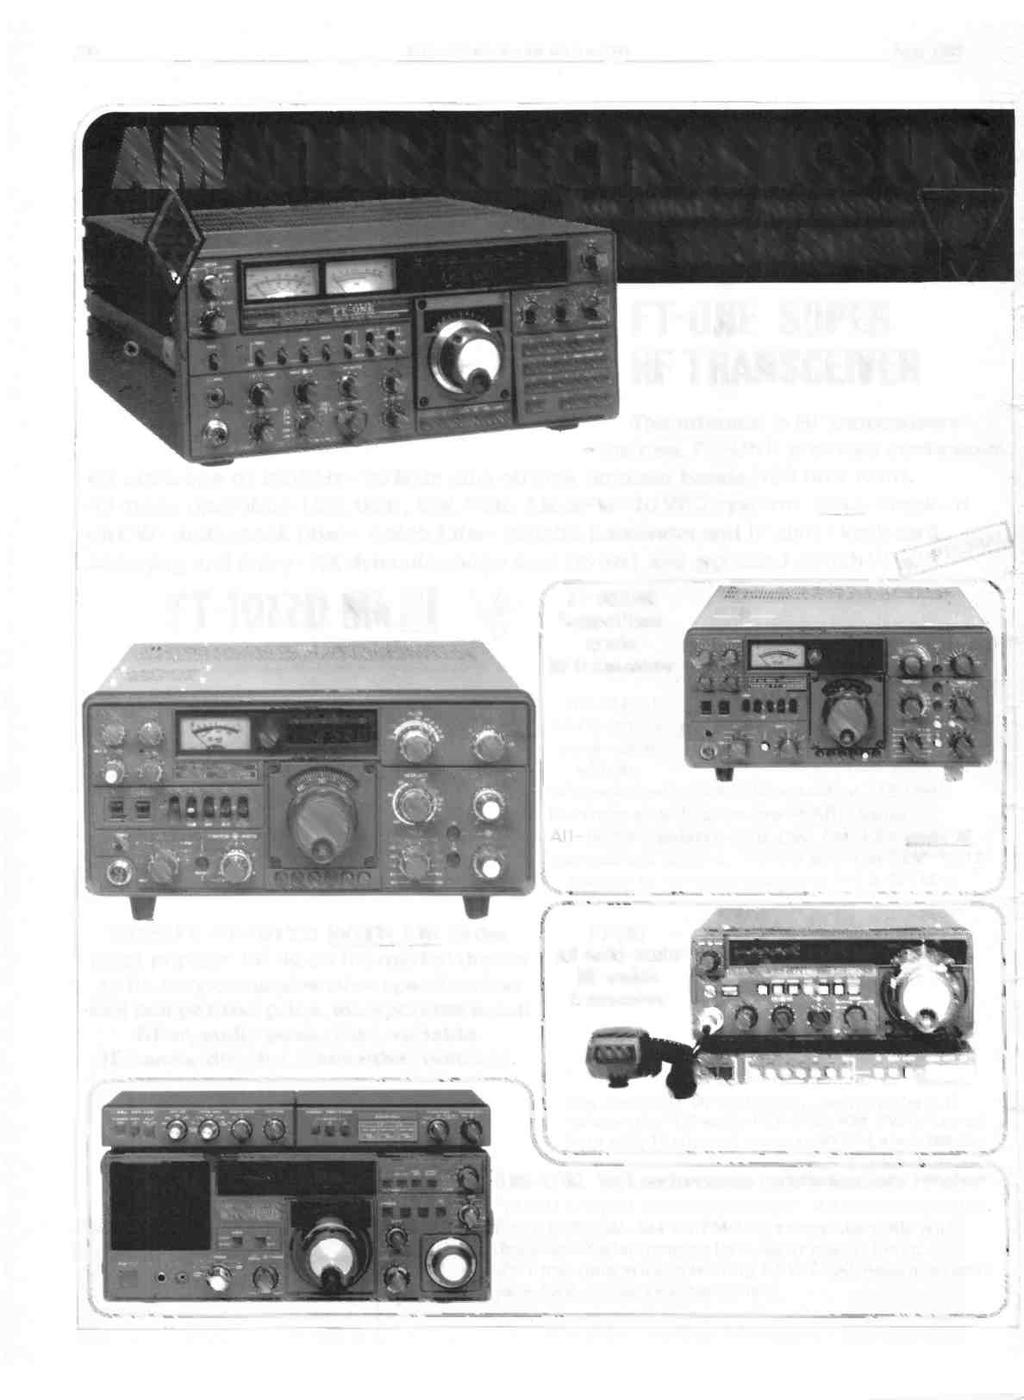 July Associated Products Indeed A Wide Range Application Of La 4440 Stereo Amplifier Hobby Circuits And Projects 230 The Short Wave Magazine 1982 Ateur Electronics Uk Your Number One Source